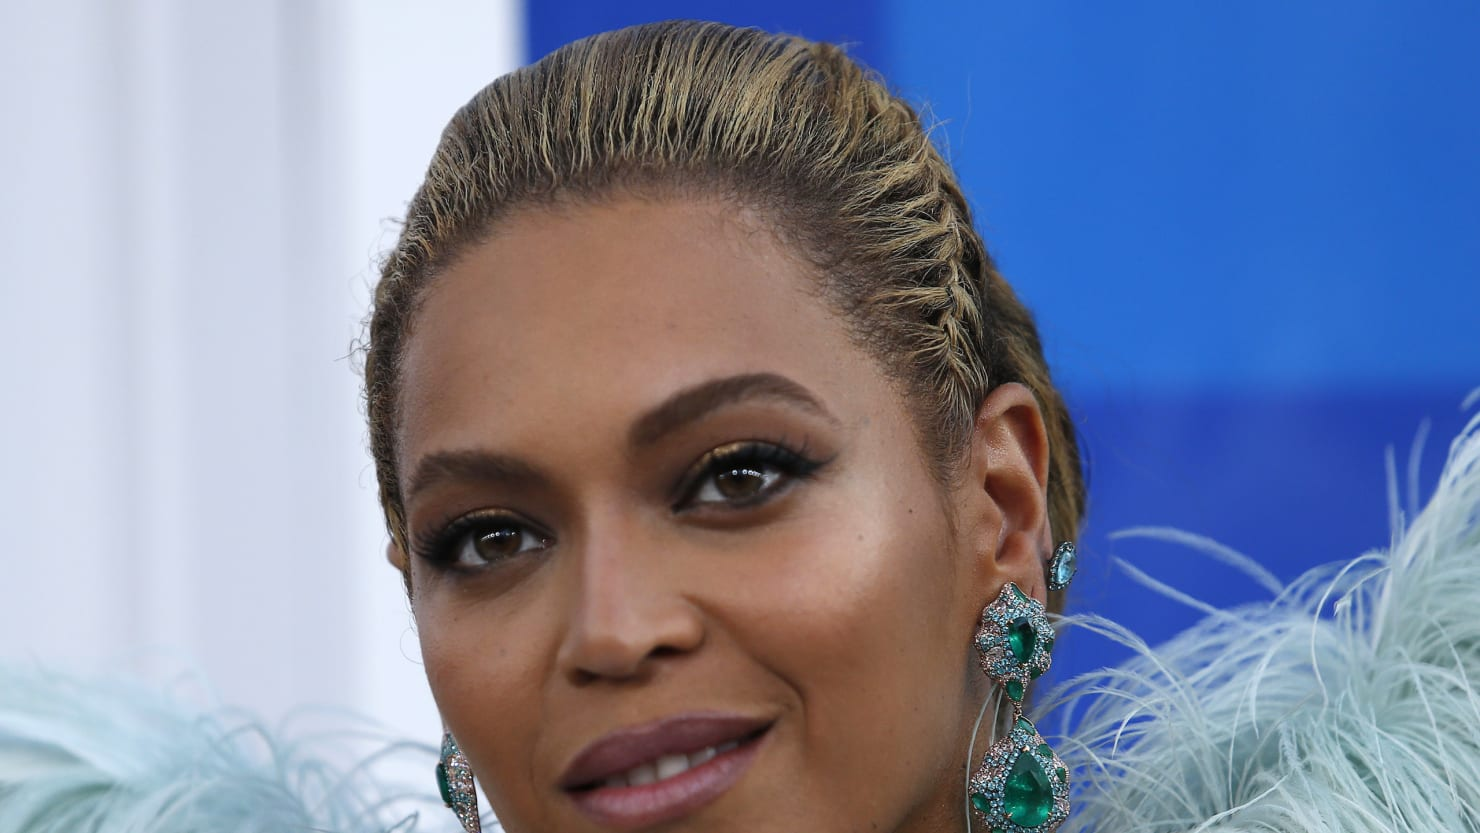 Solange, Kendrick Lamar and More Outraged Over Beyoncé's Grammys Snub